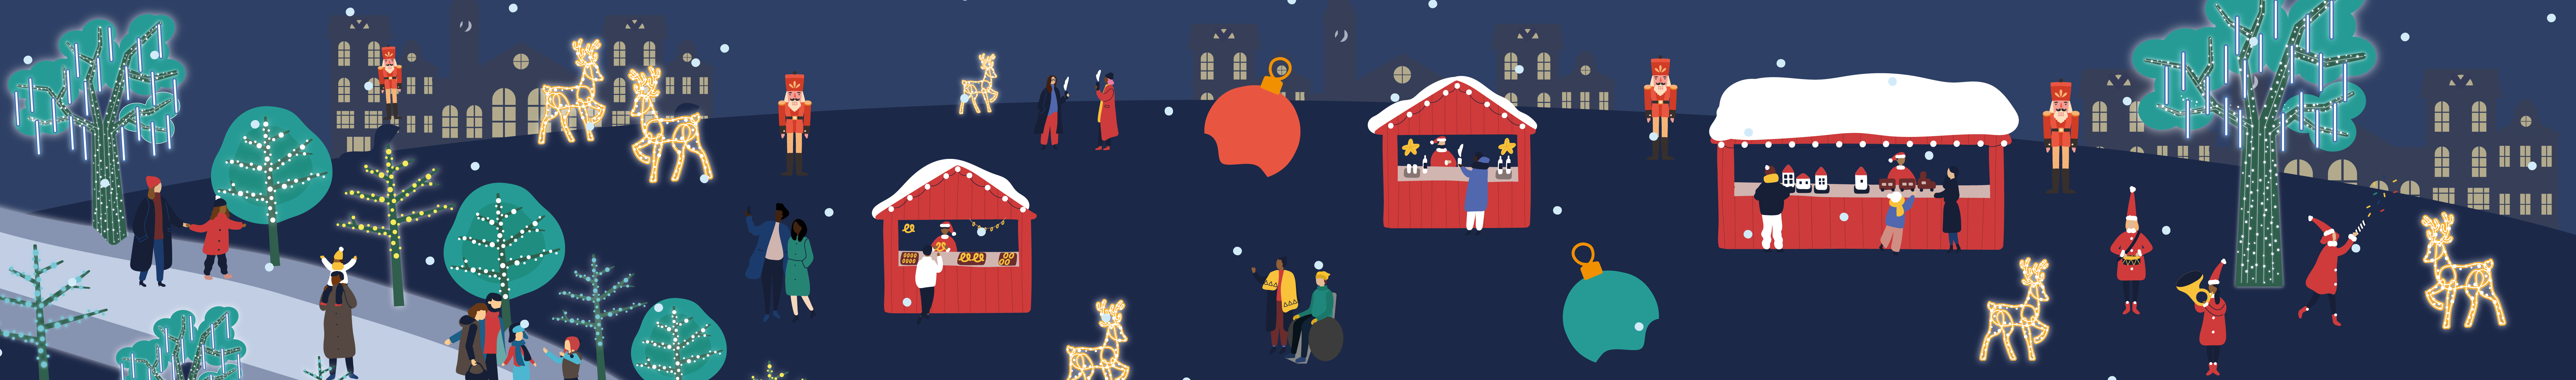 Christmas illustration banner